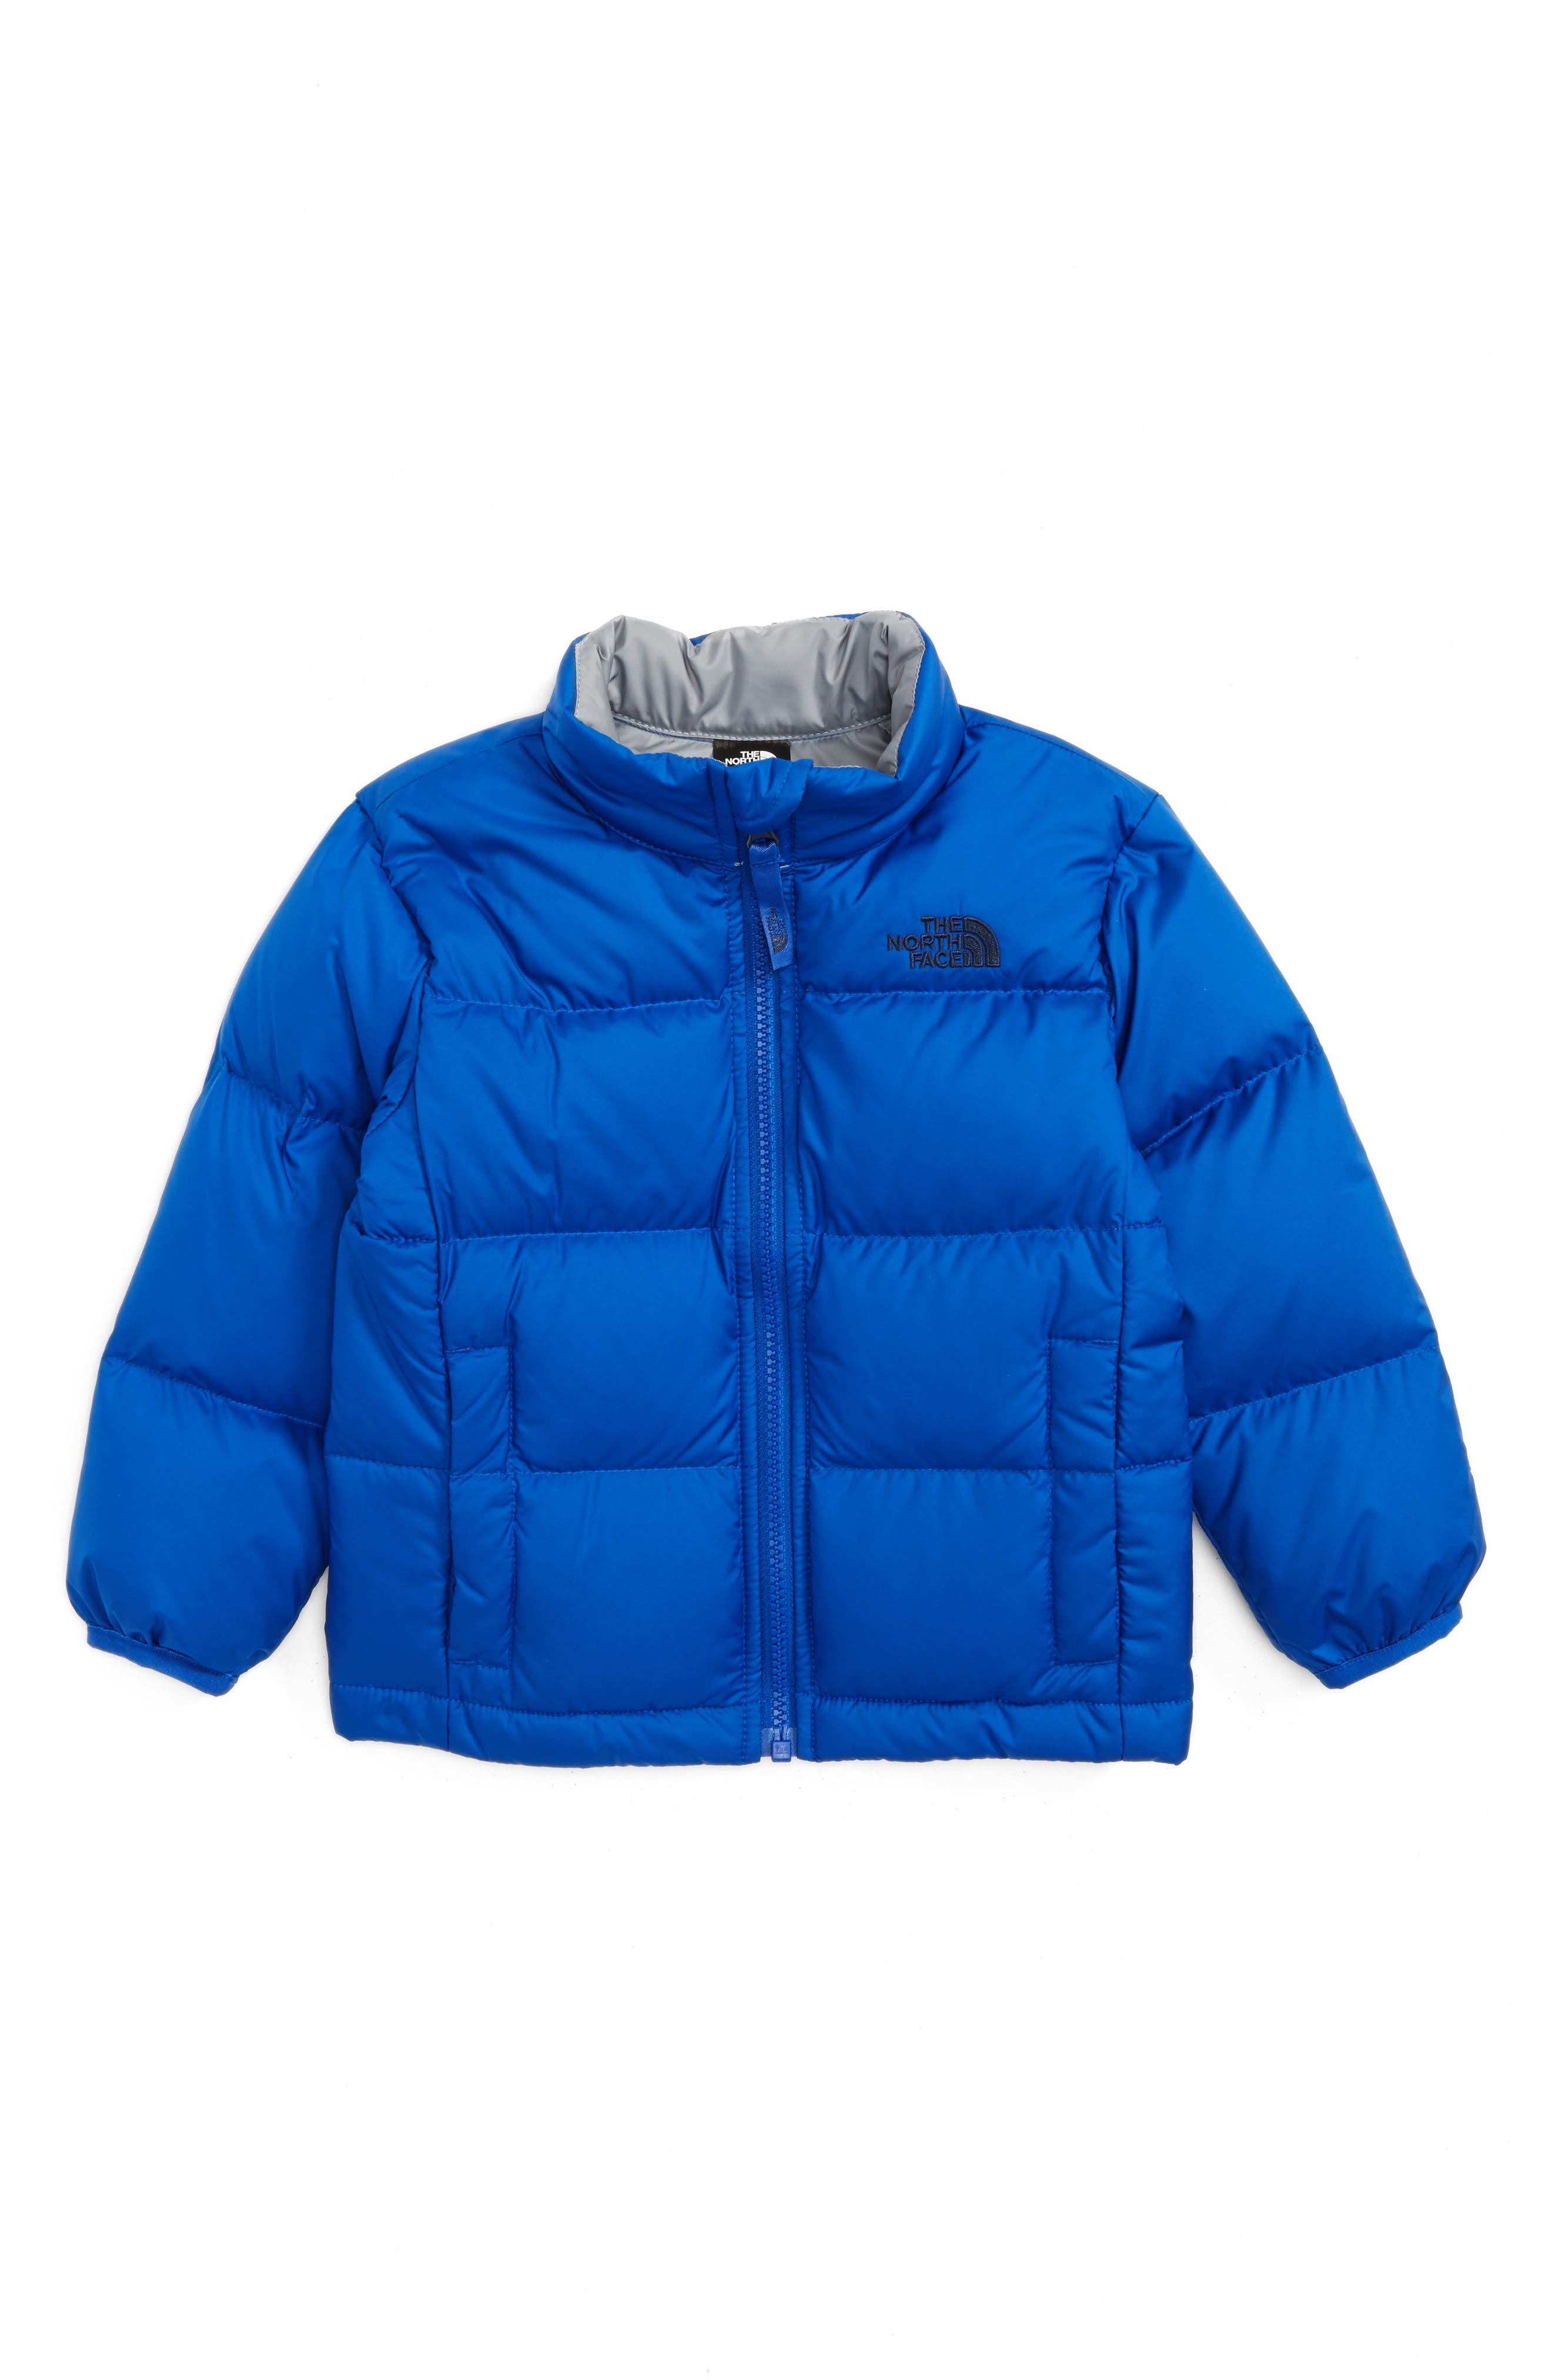 Alternate Image 1 Selected - The North Face 'Andes' Down Jacket (Toddler Boys & Little Boys)